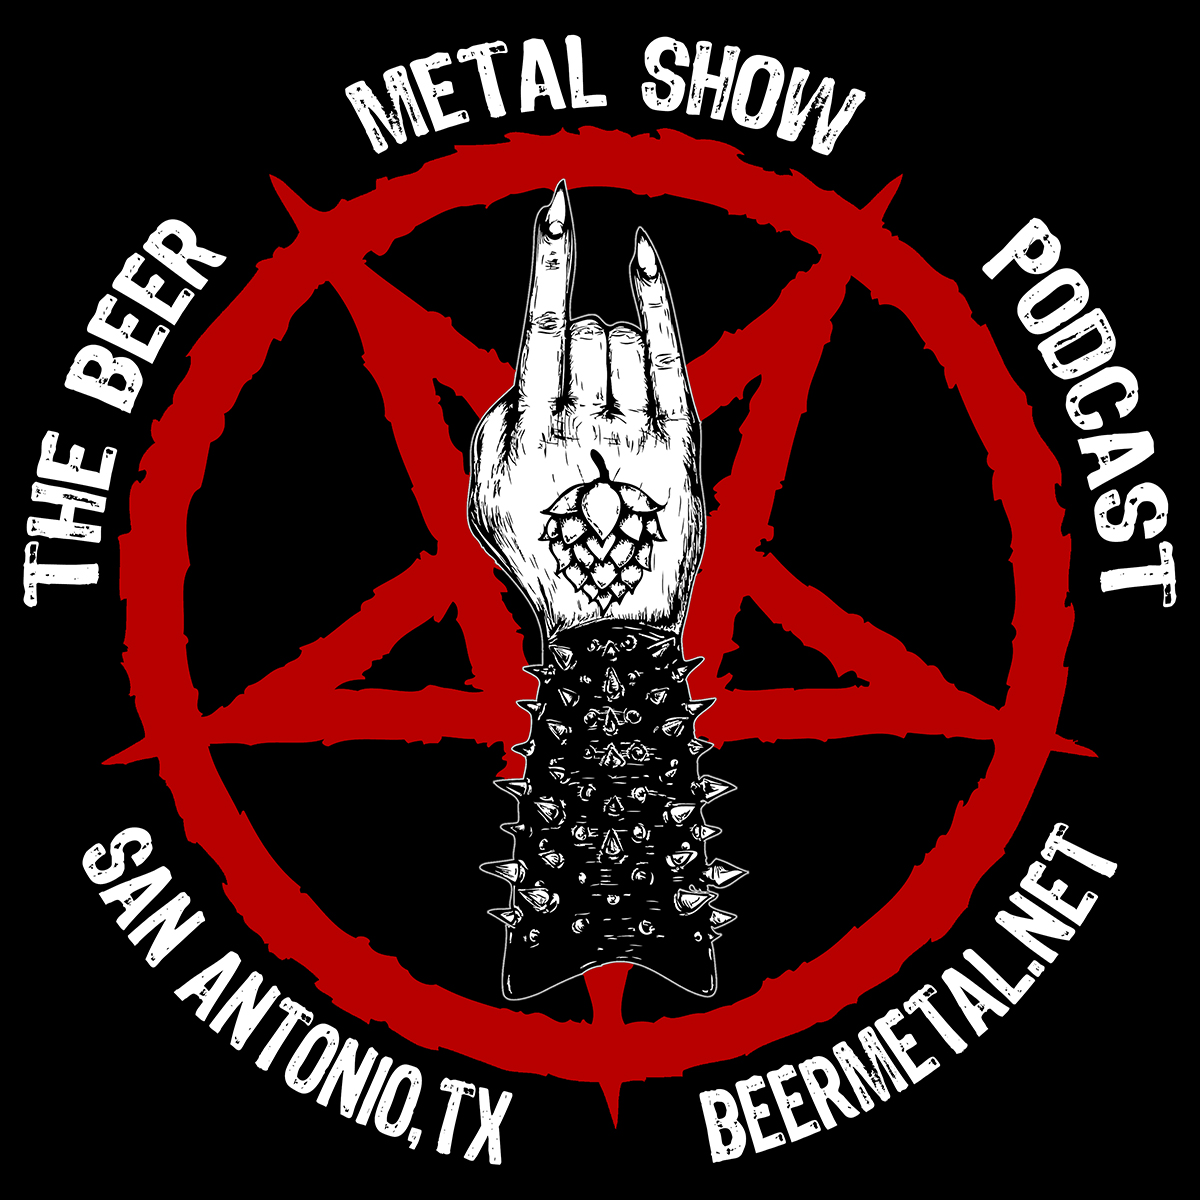 BeerMetalShow 26(66) | A Sit Down with the MASTER